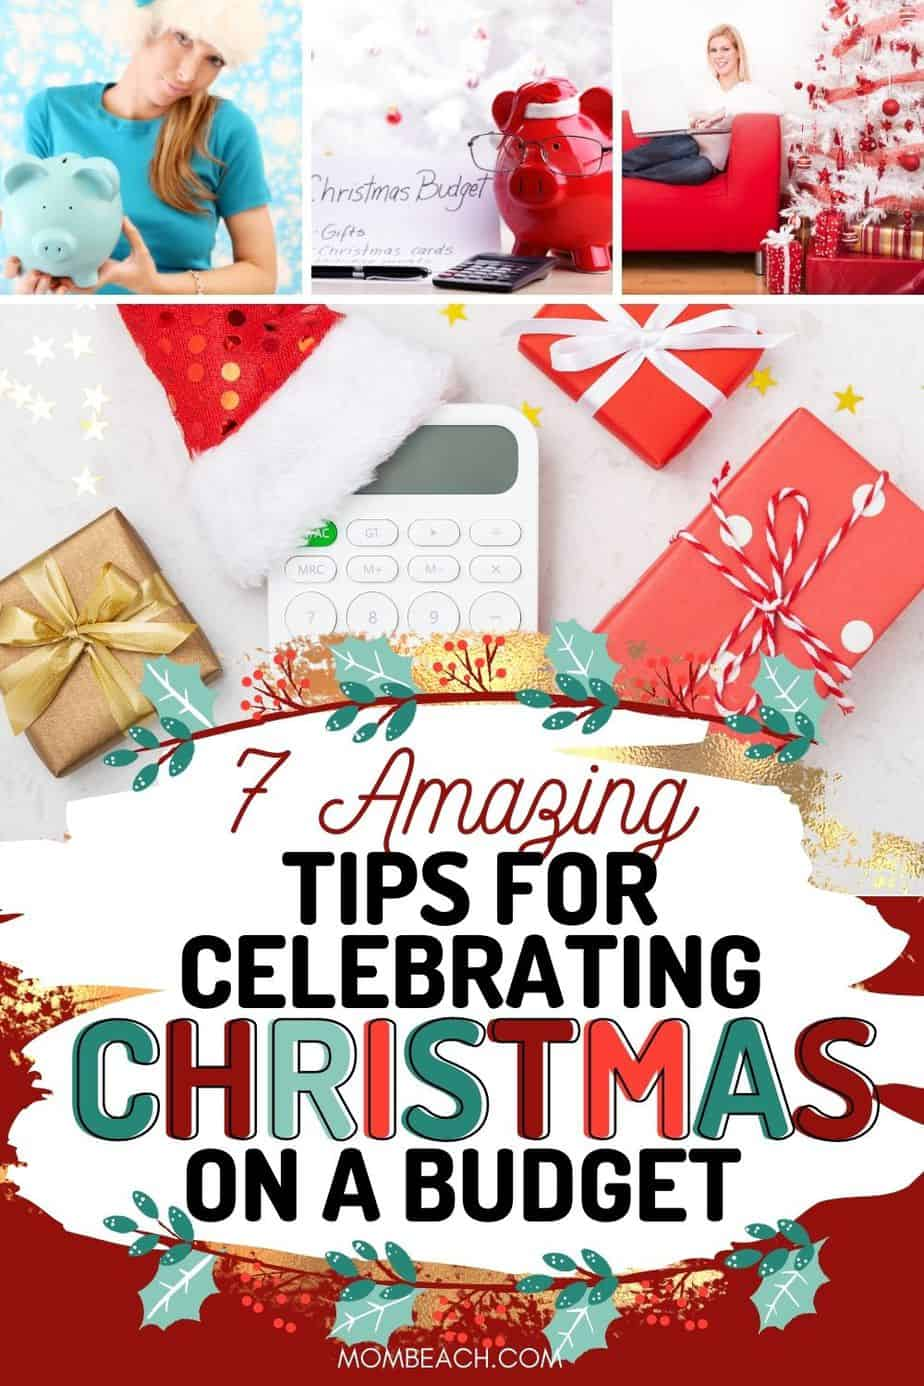 DON'T GET INTO DEBT COMES NEW YEARS! Start budgeting for Christmas now. With this guide, I share 7 amazing tips to help you budget for the Christmas holiday. Start Christmas on a budget for gifts, decorations, food, and more. Your kids can still have a great Christmas on a shoestring budget. Live frugally and still have a fun Christmas that is memorable for years to come. You don't have to get into massive debt in order to have a happy holiday. #christmasonabudget #christmasonabudgetgifts